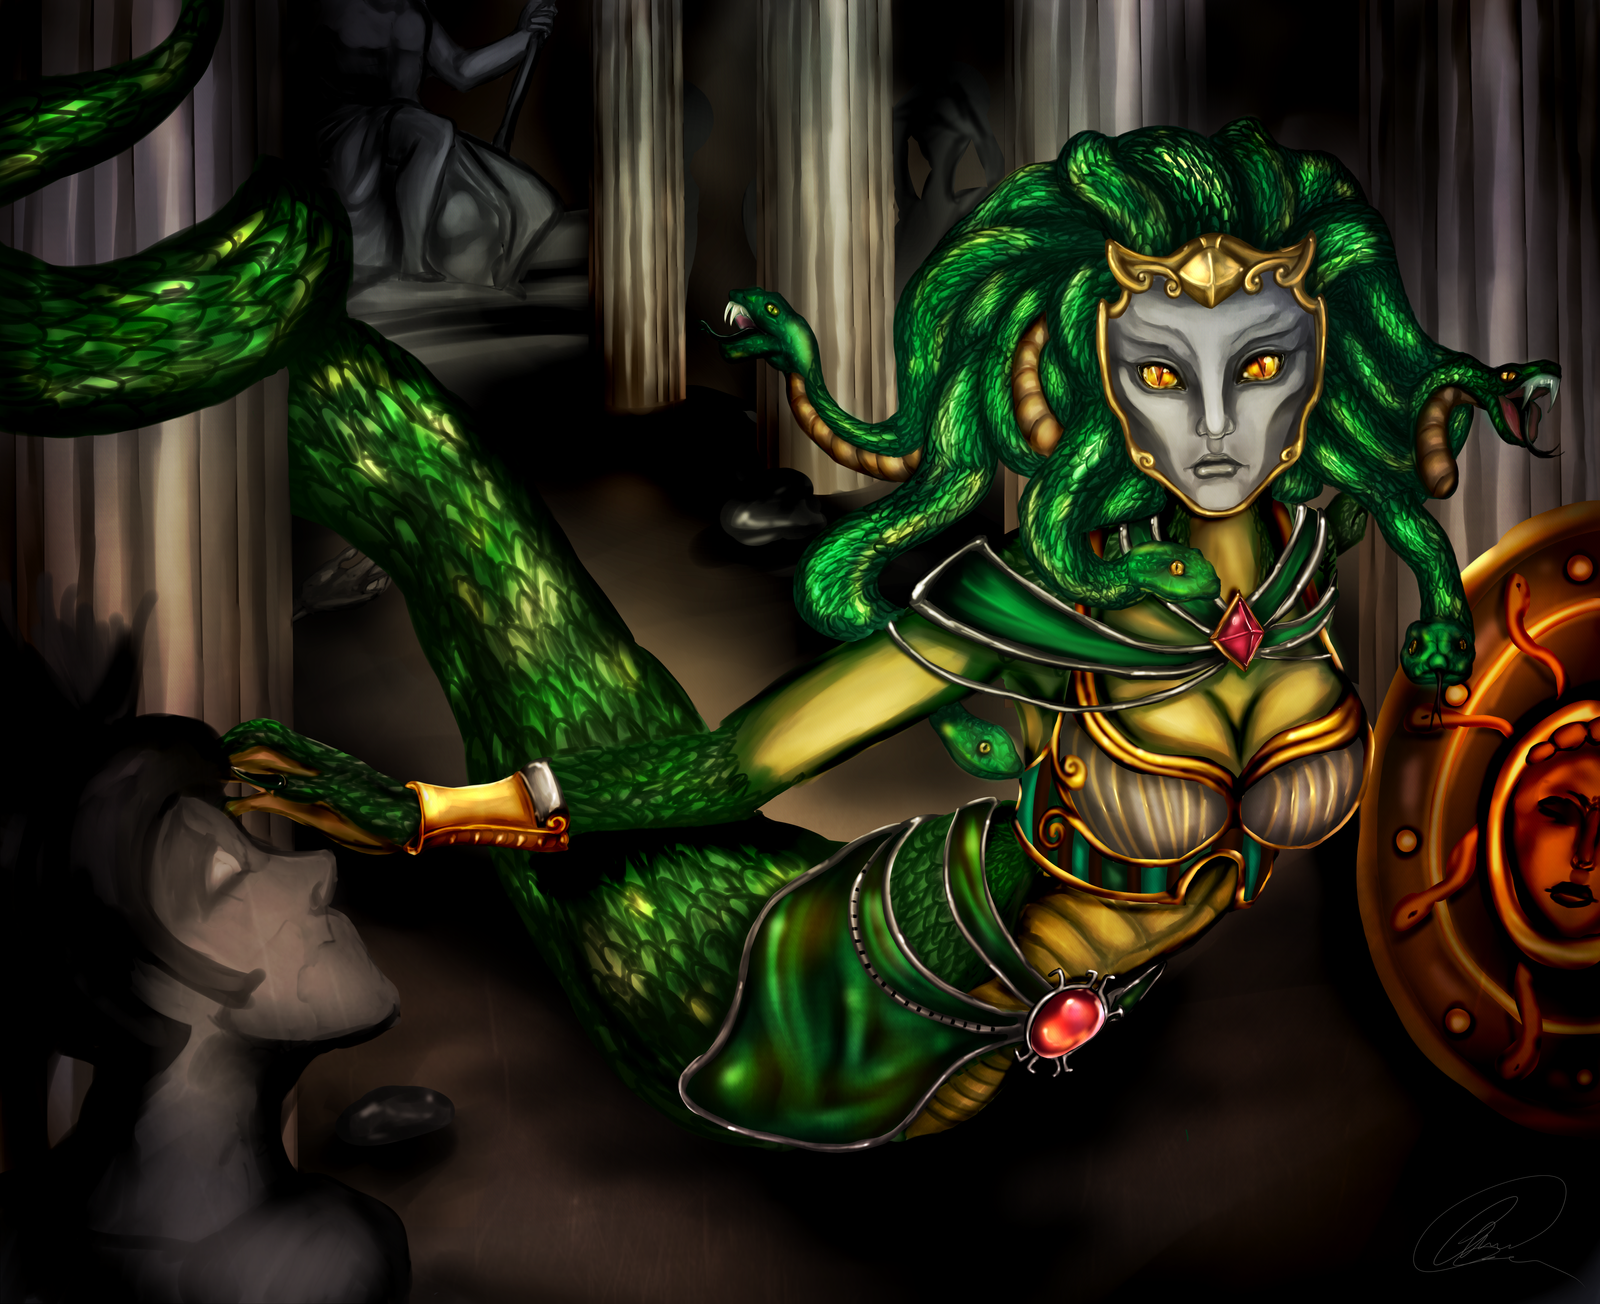 Medusa - The Gorgon by MaMze95 on DeviantArt